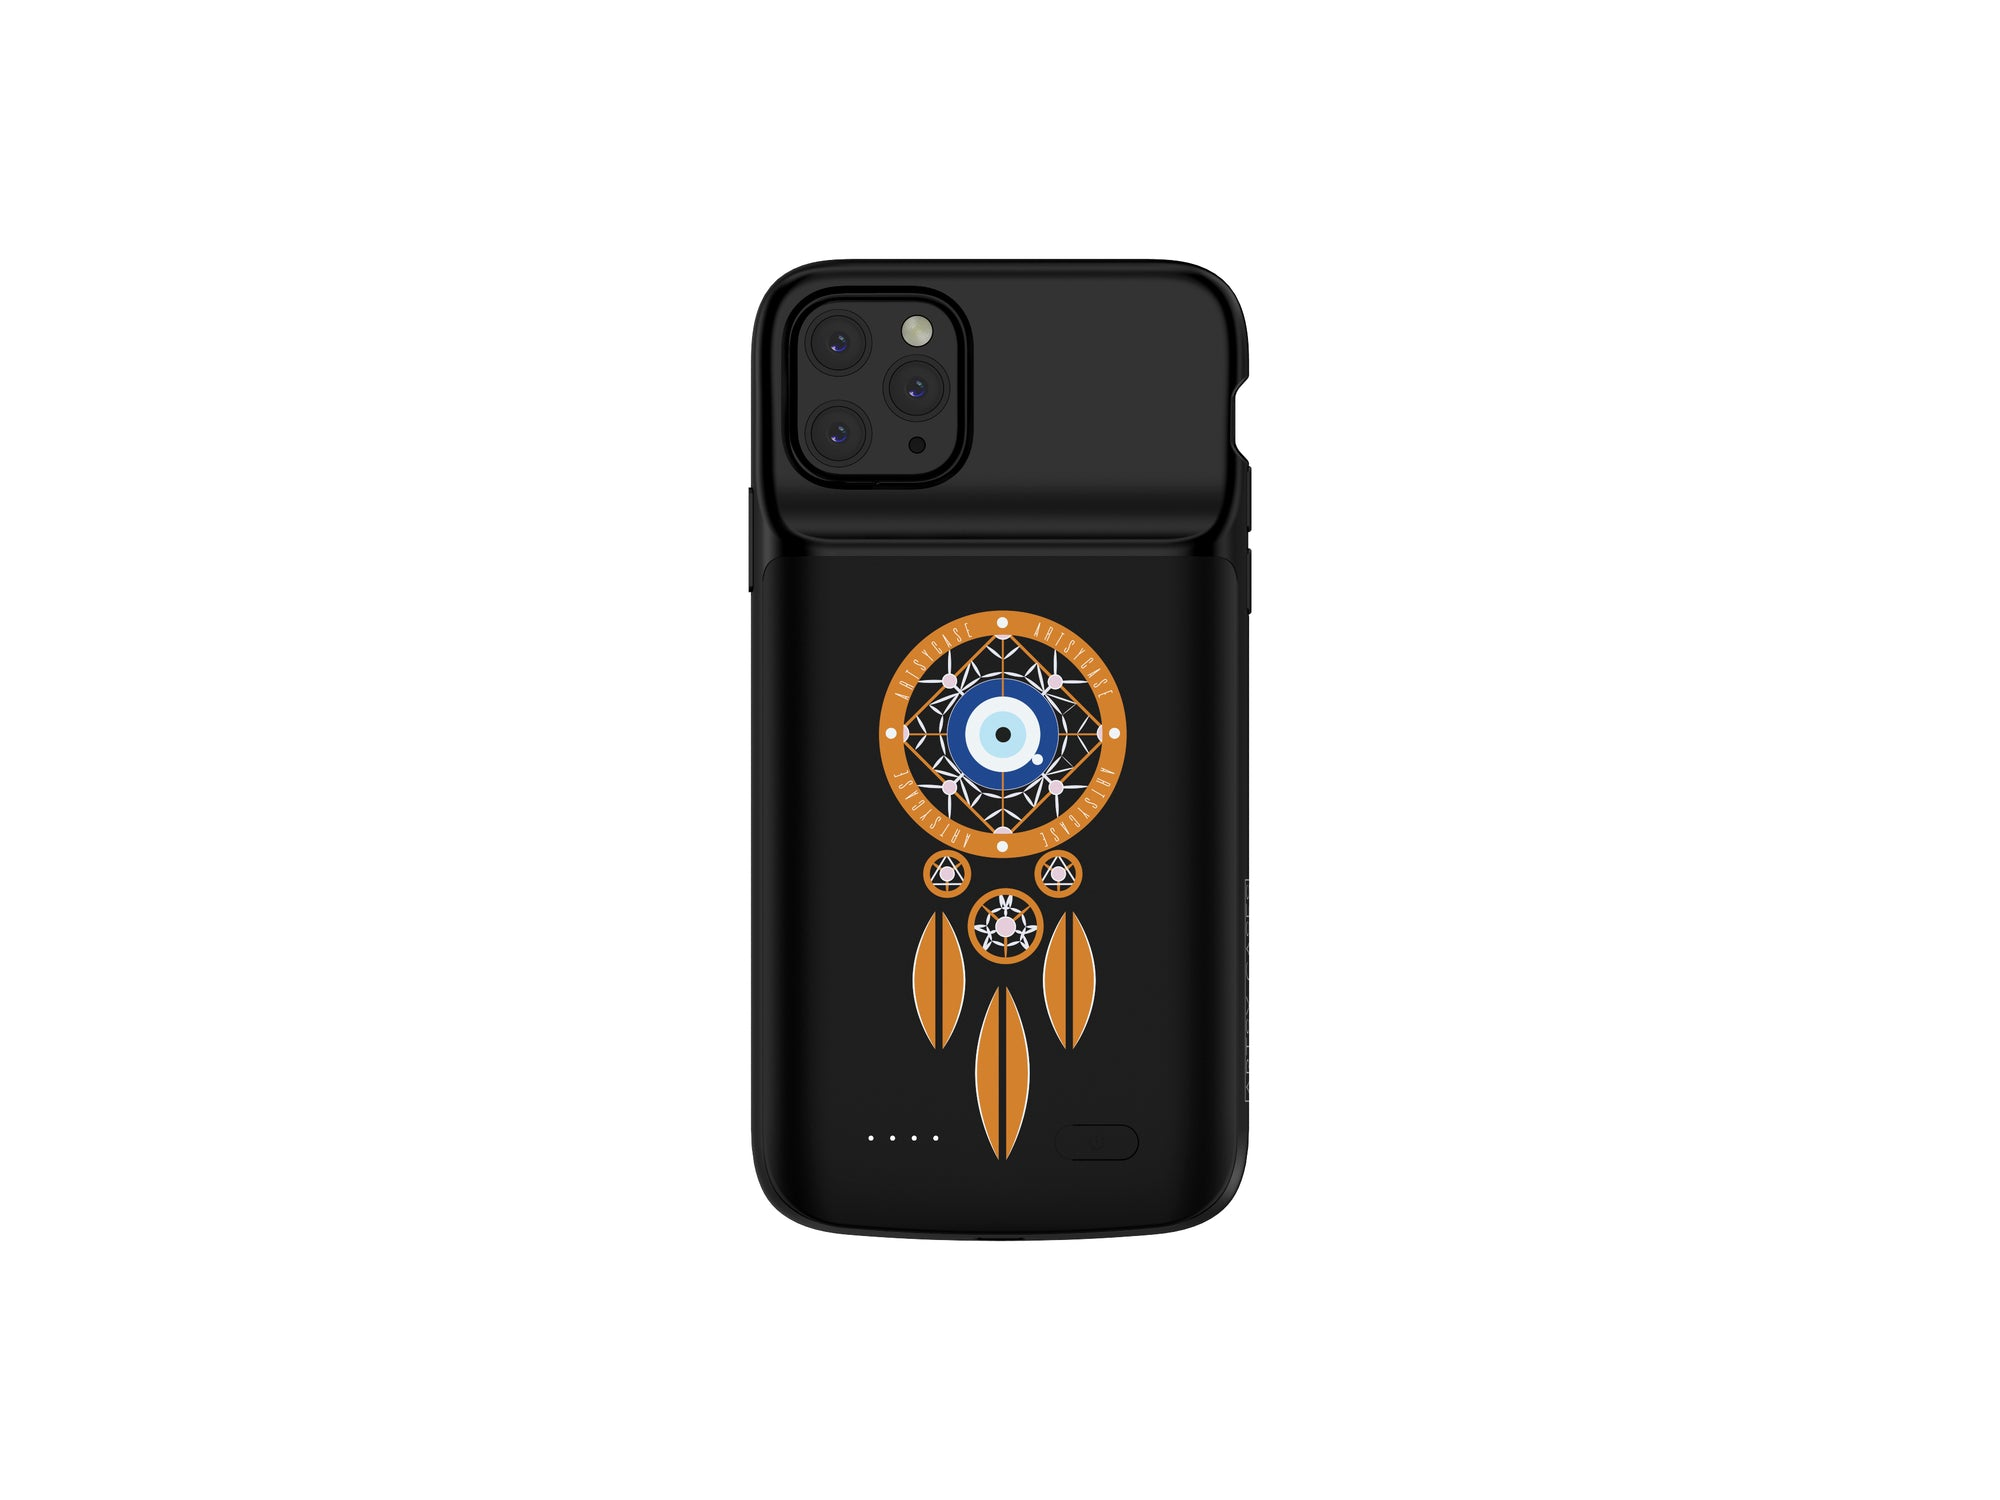 iPhone Pro Max Dreamcatcher